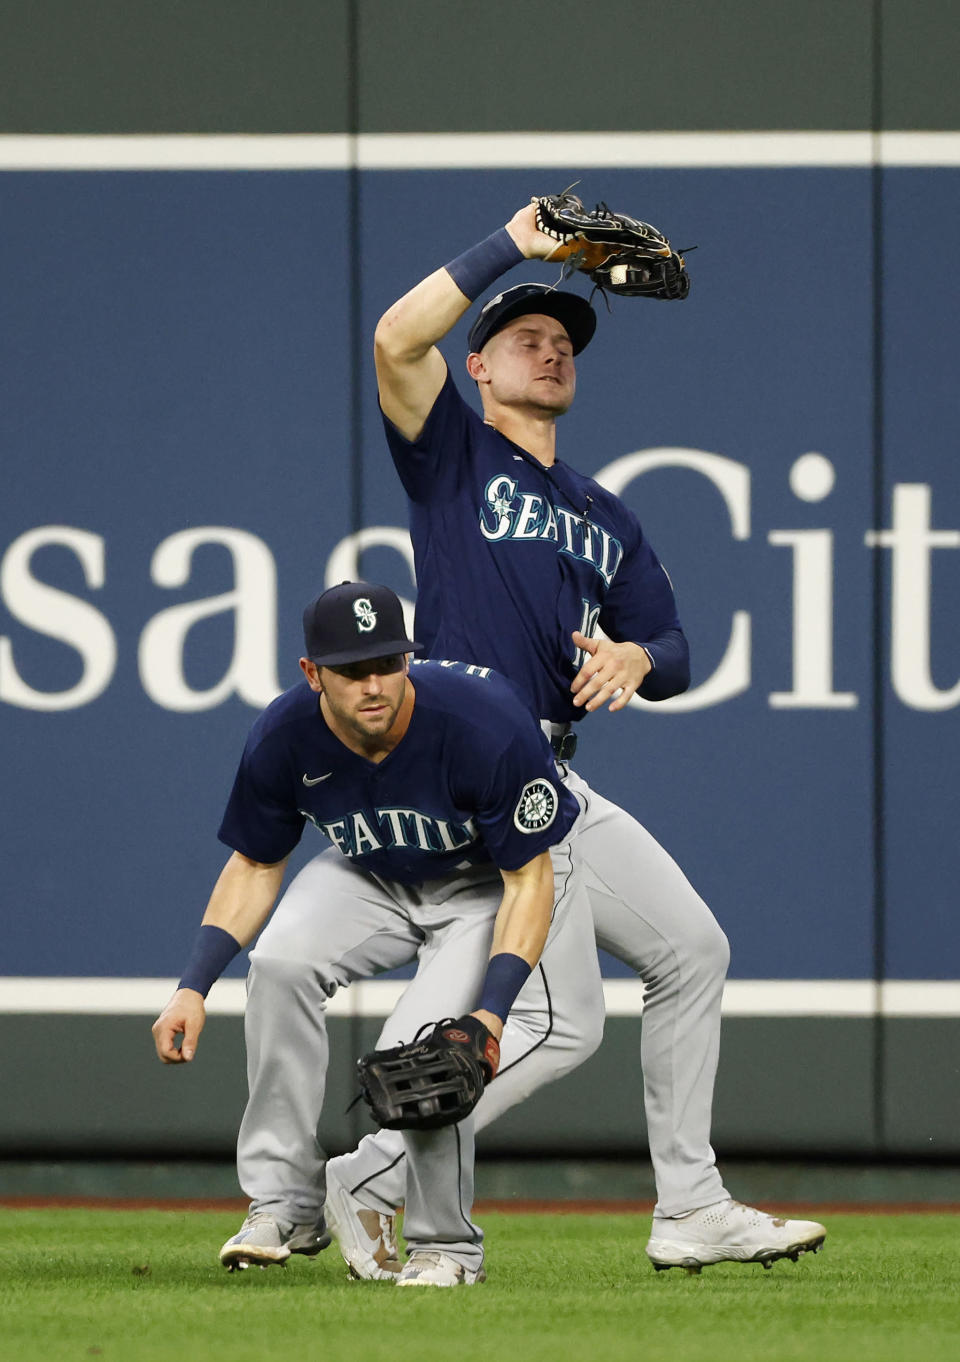 Seattle Mariners center fielder Jarred Kelenic, top, catches a fly ball from Kansas City Royals' Andrew Benintendi as right fielder Mitch Haniger, bottom, avoids the play during the third inning of a baseball game at Kauffman Stadium in Kansas City, Mo., Saturday, Sept. 18, 2021. (AP Photo/Colin E. Braley)